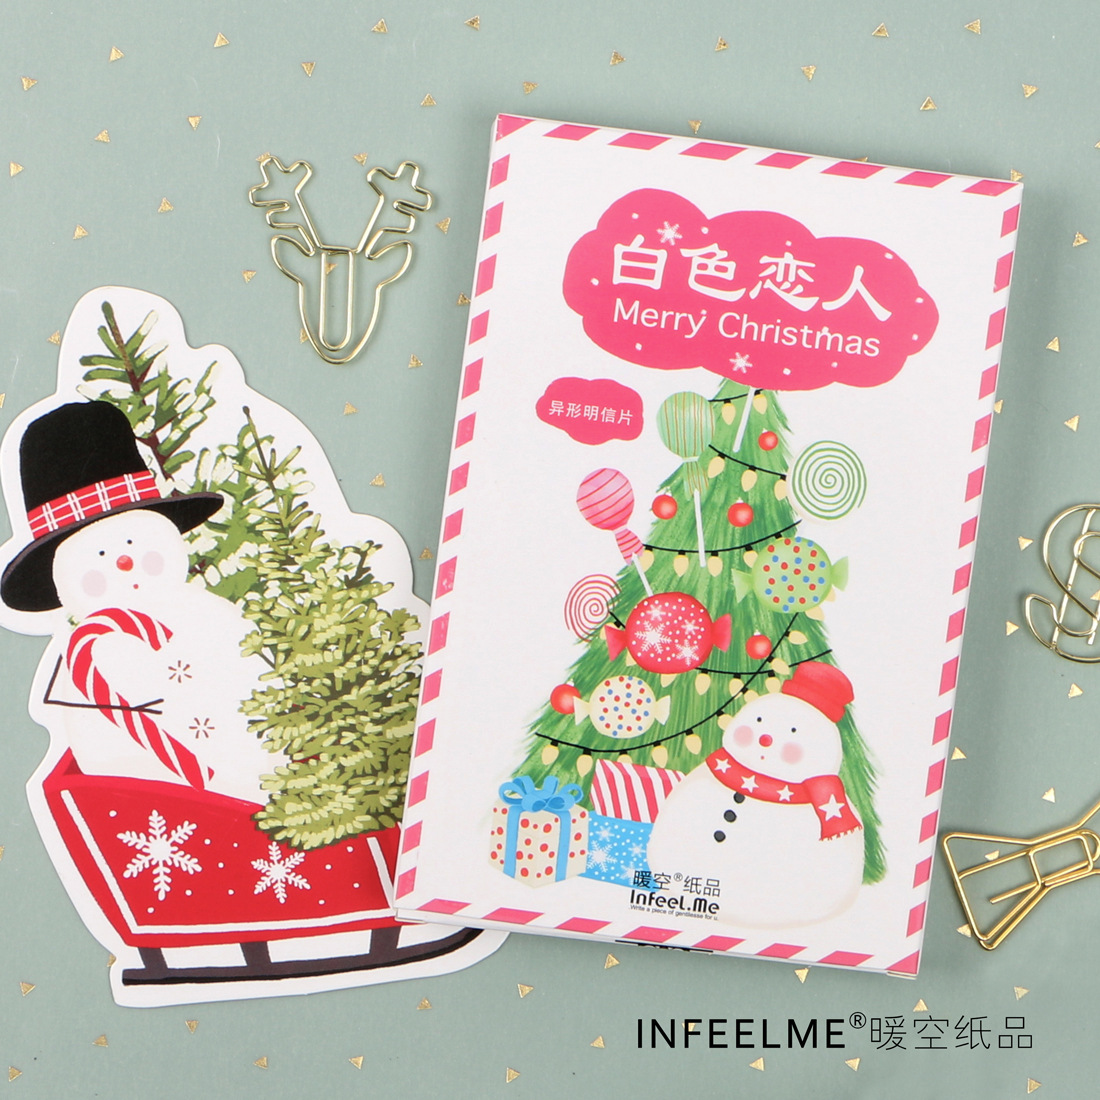 30 Pcs/pack Cute Snowman Merry Christmas Greeting Card Postcard Birthday Gift Card Set Message Card Letter Envelope Card Stock